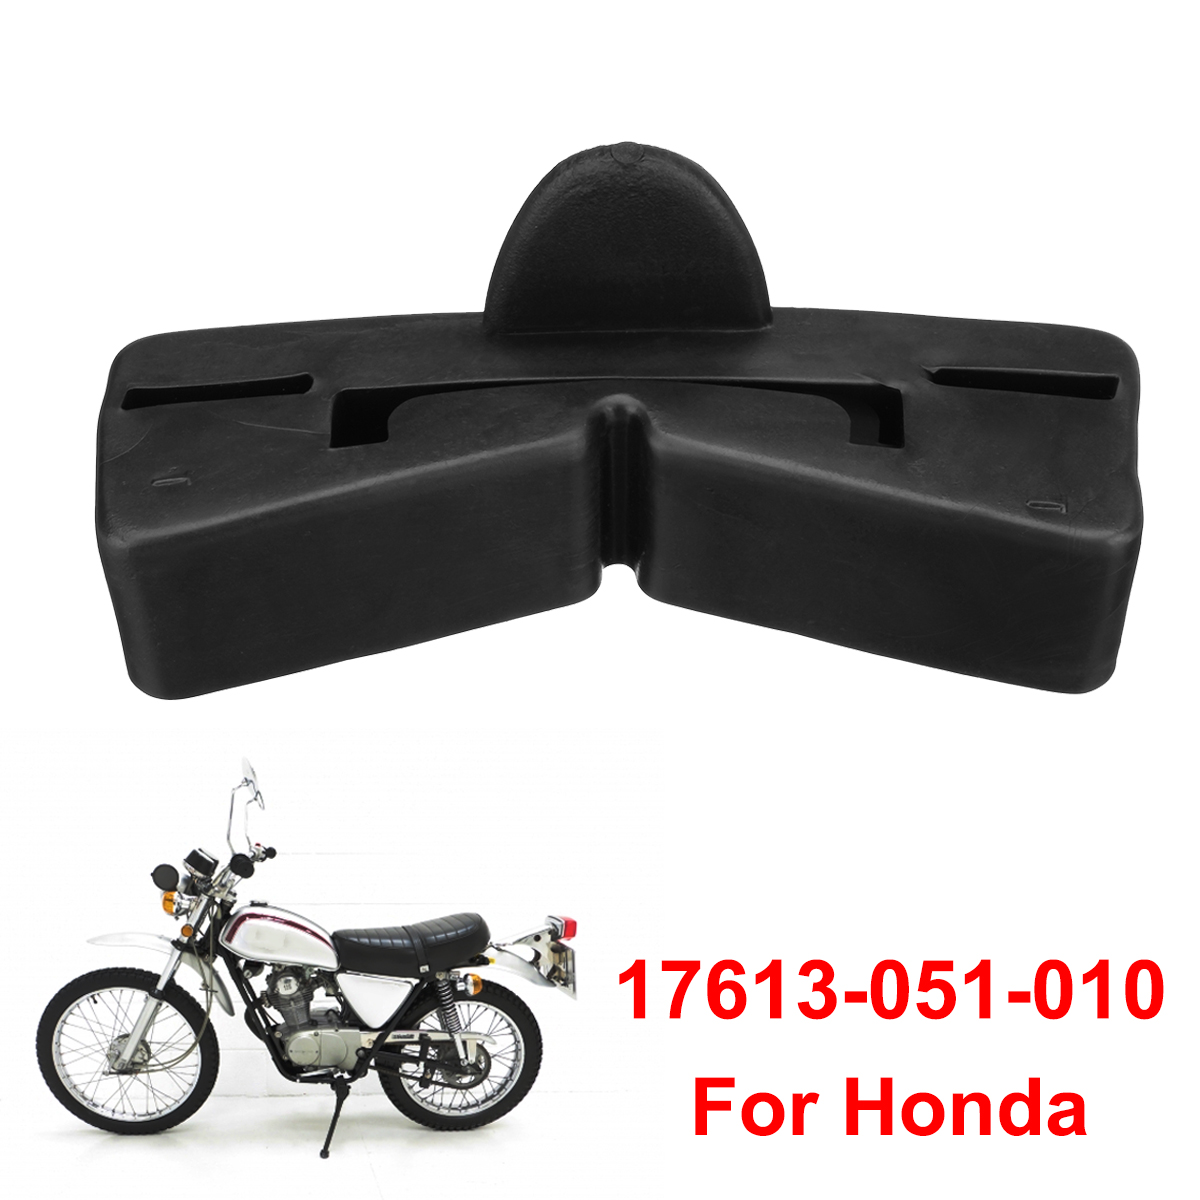 HONDA XR75 1974-1976 BRAND NEW BEST QUALITY COMPLETE SEAT